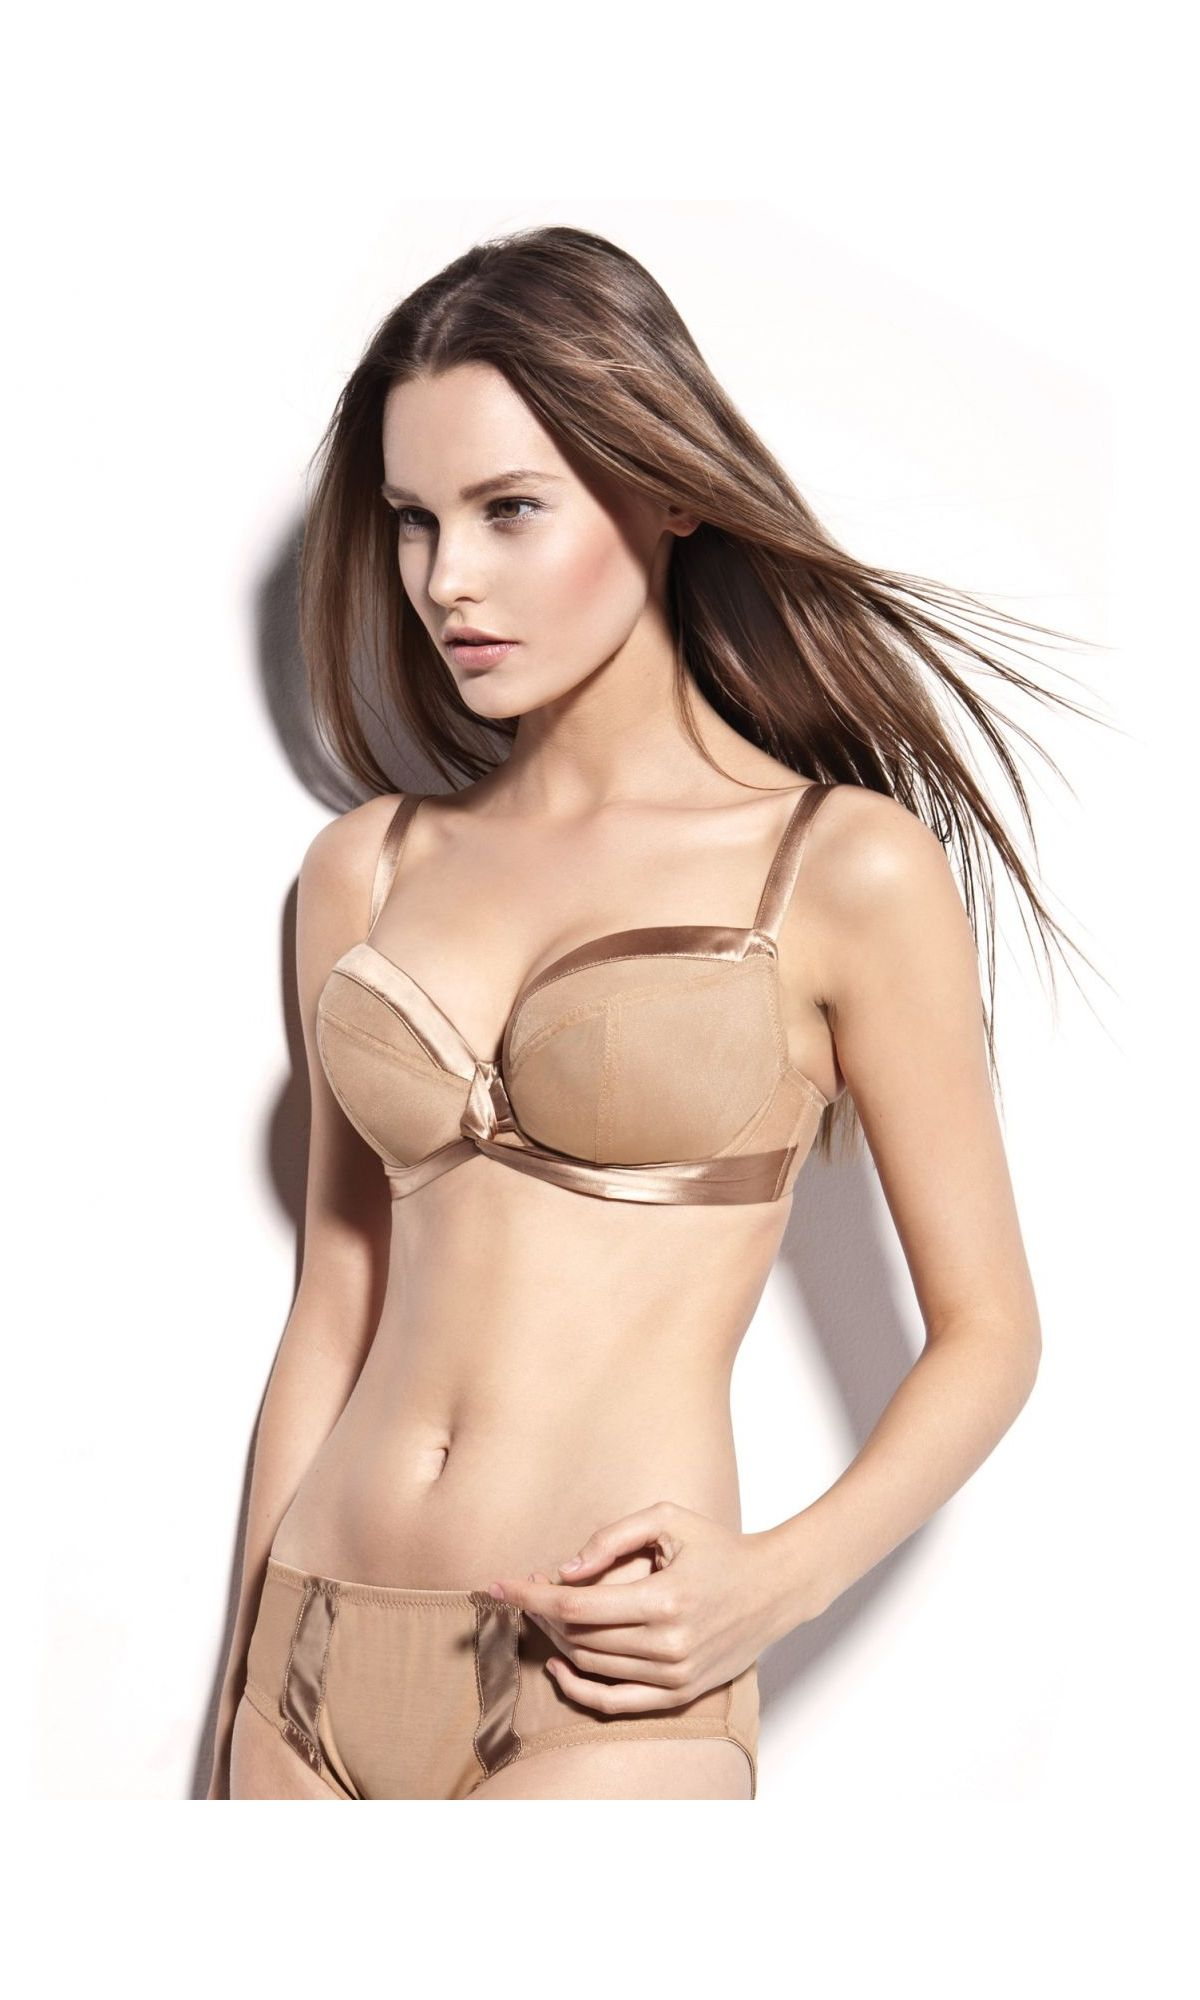 2db8fac5ac60b Avocado Nina plunge bra in gold.  ddplus  28band  40band